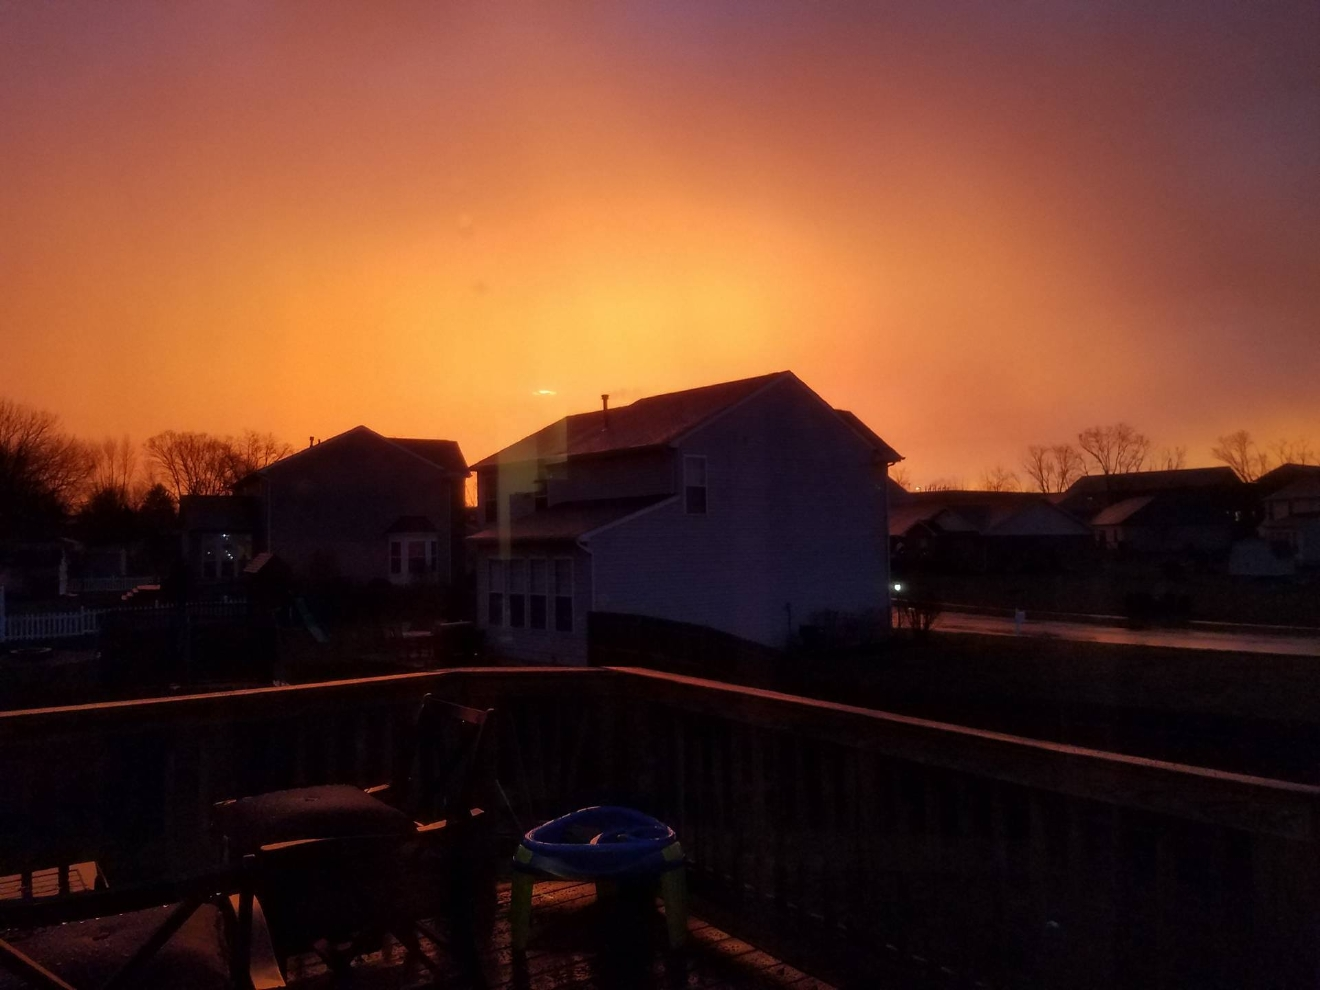 Submitted by Tiffany in Miamimsburg